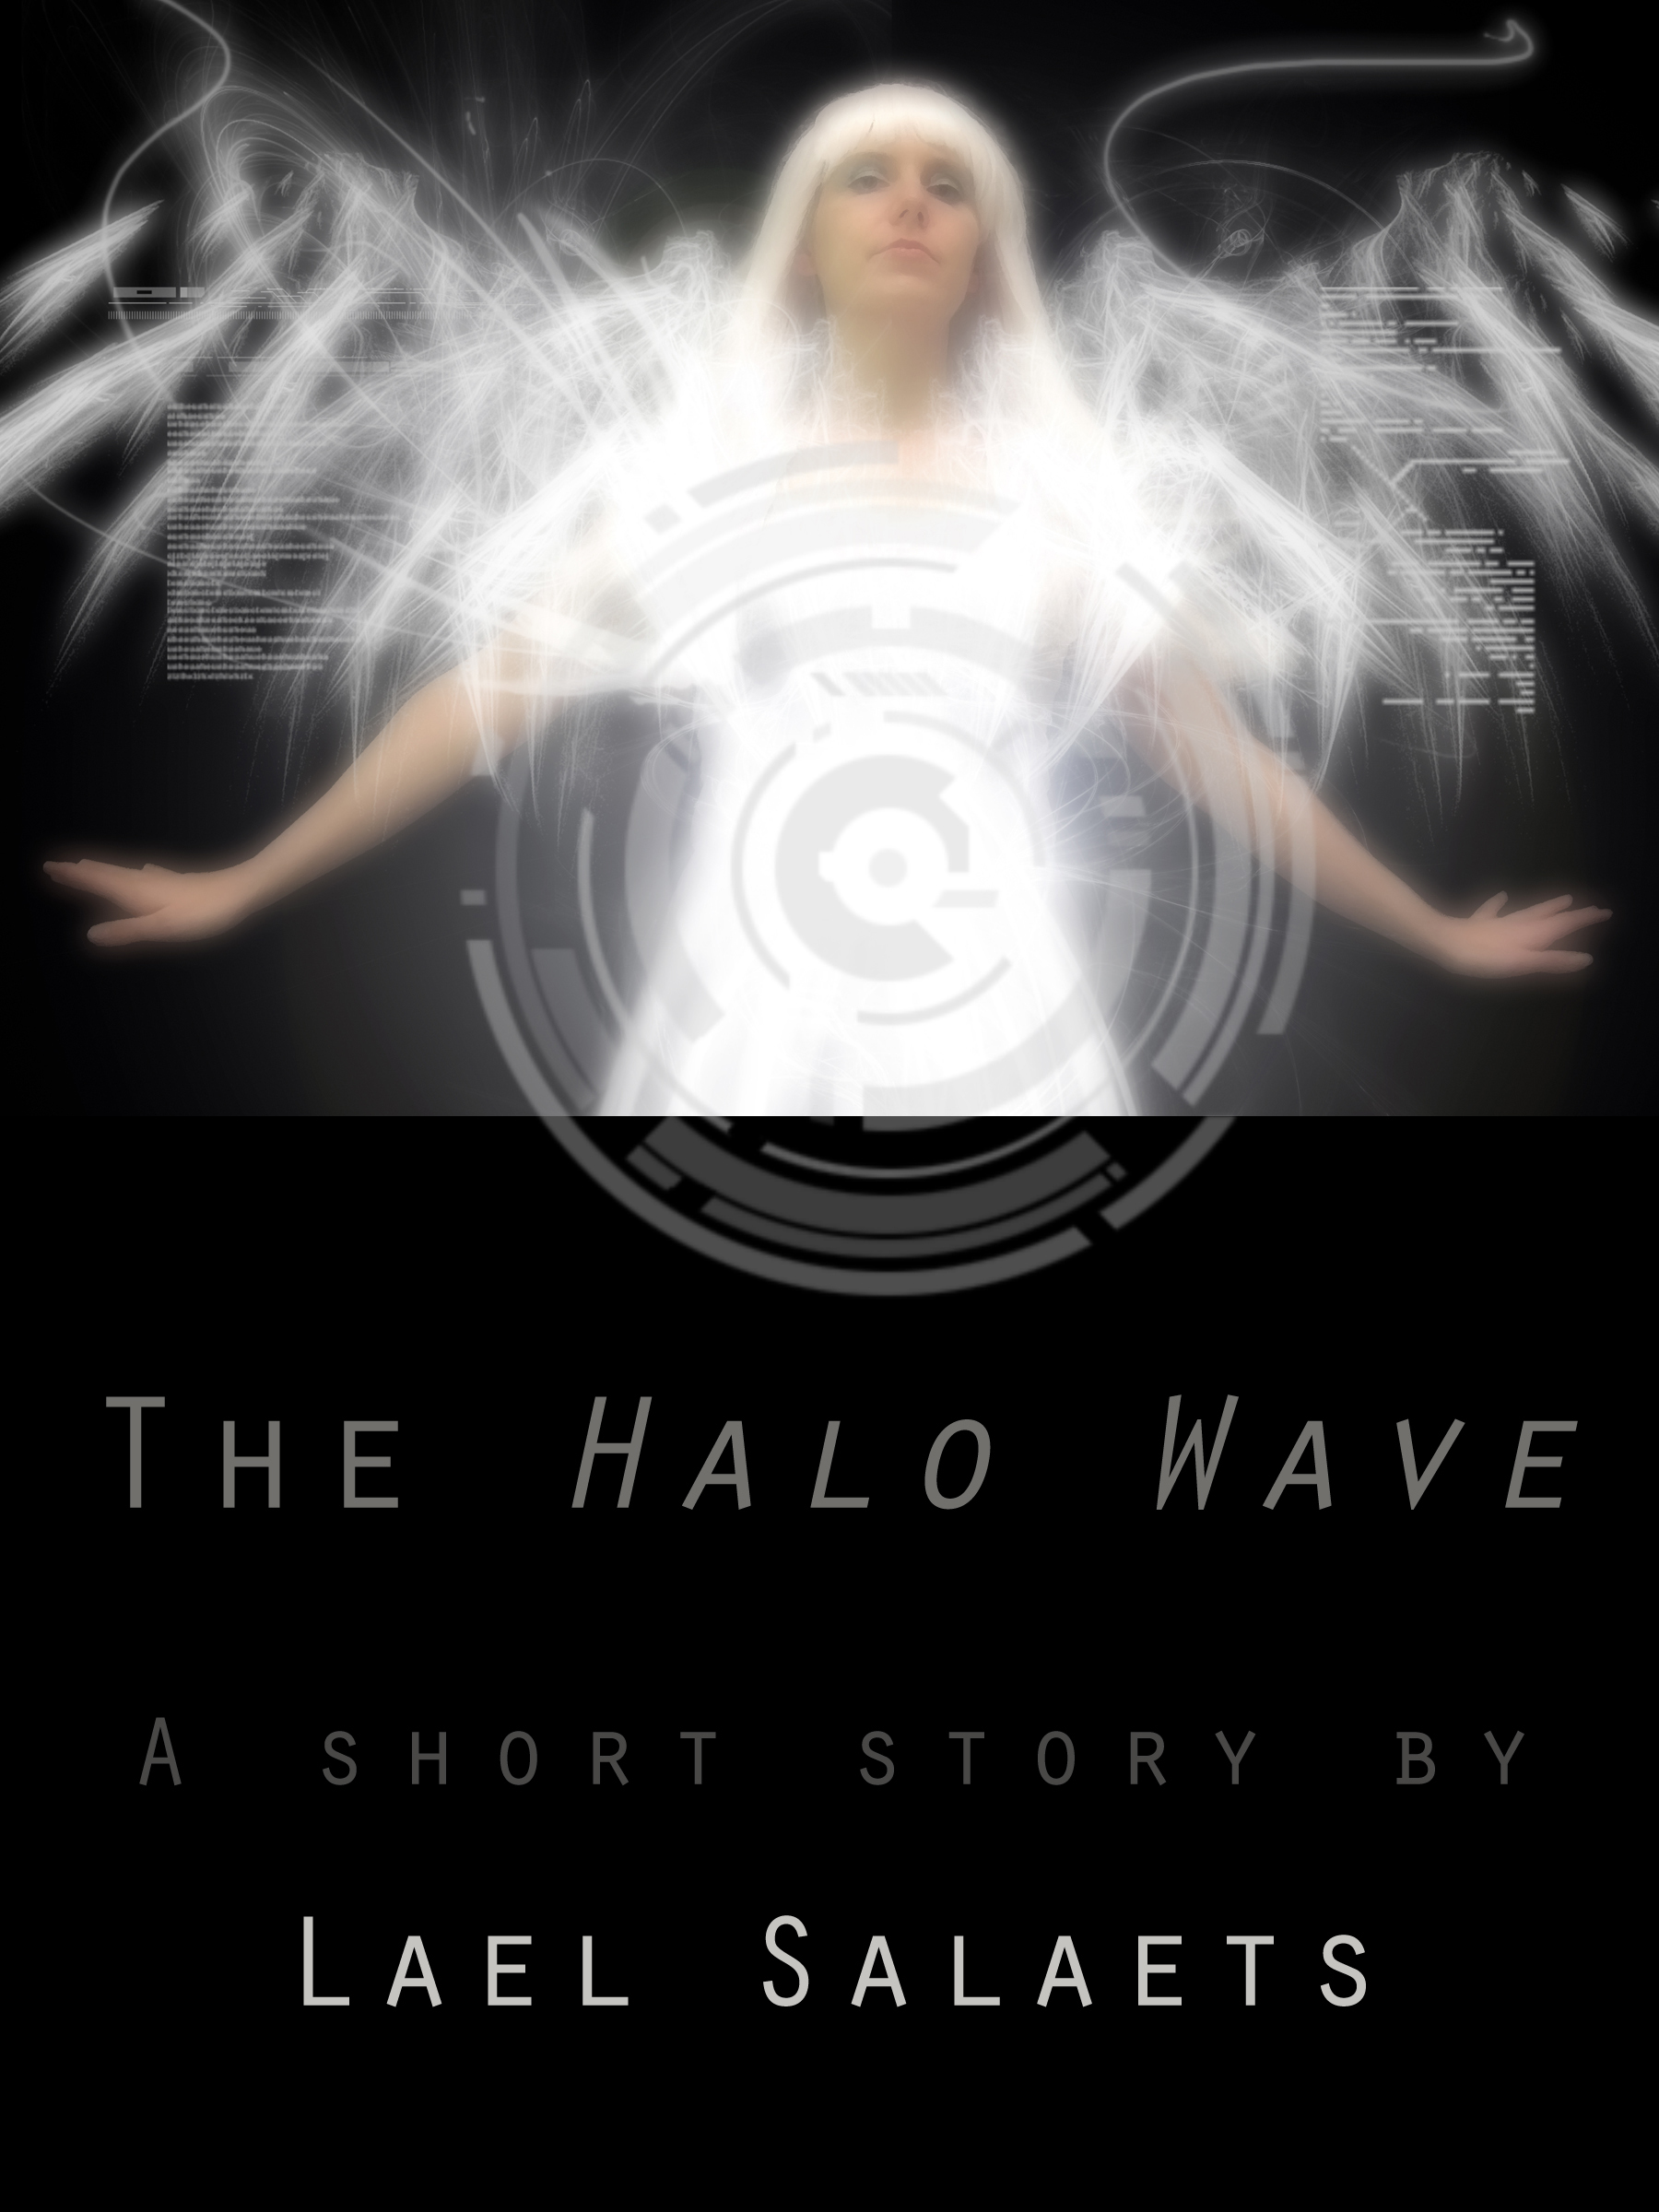 The Halo Wave